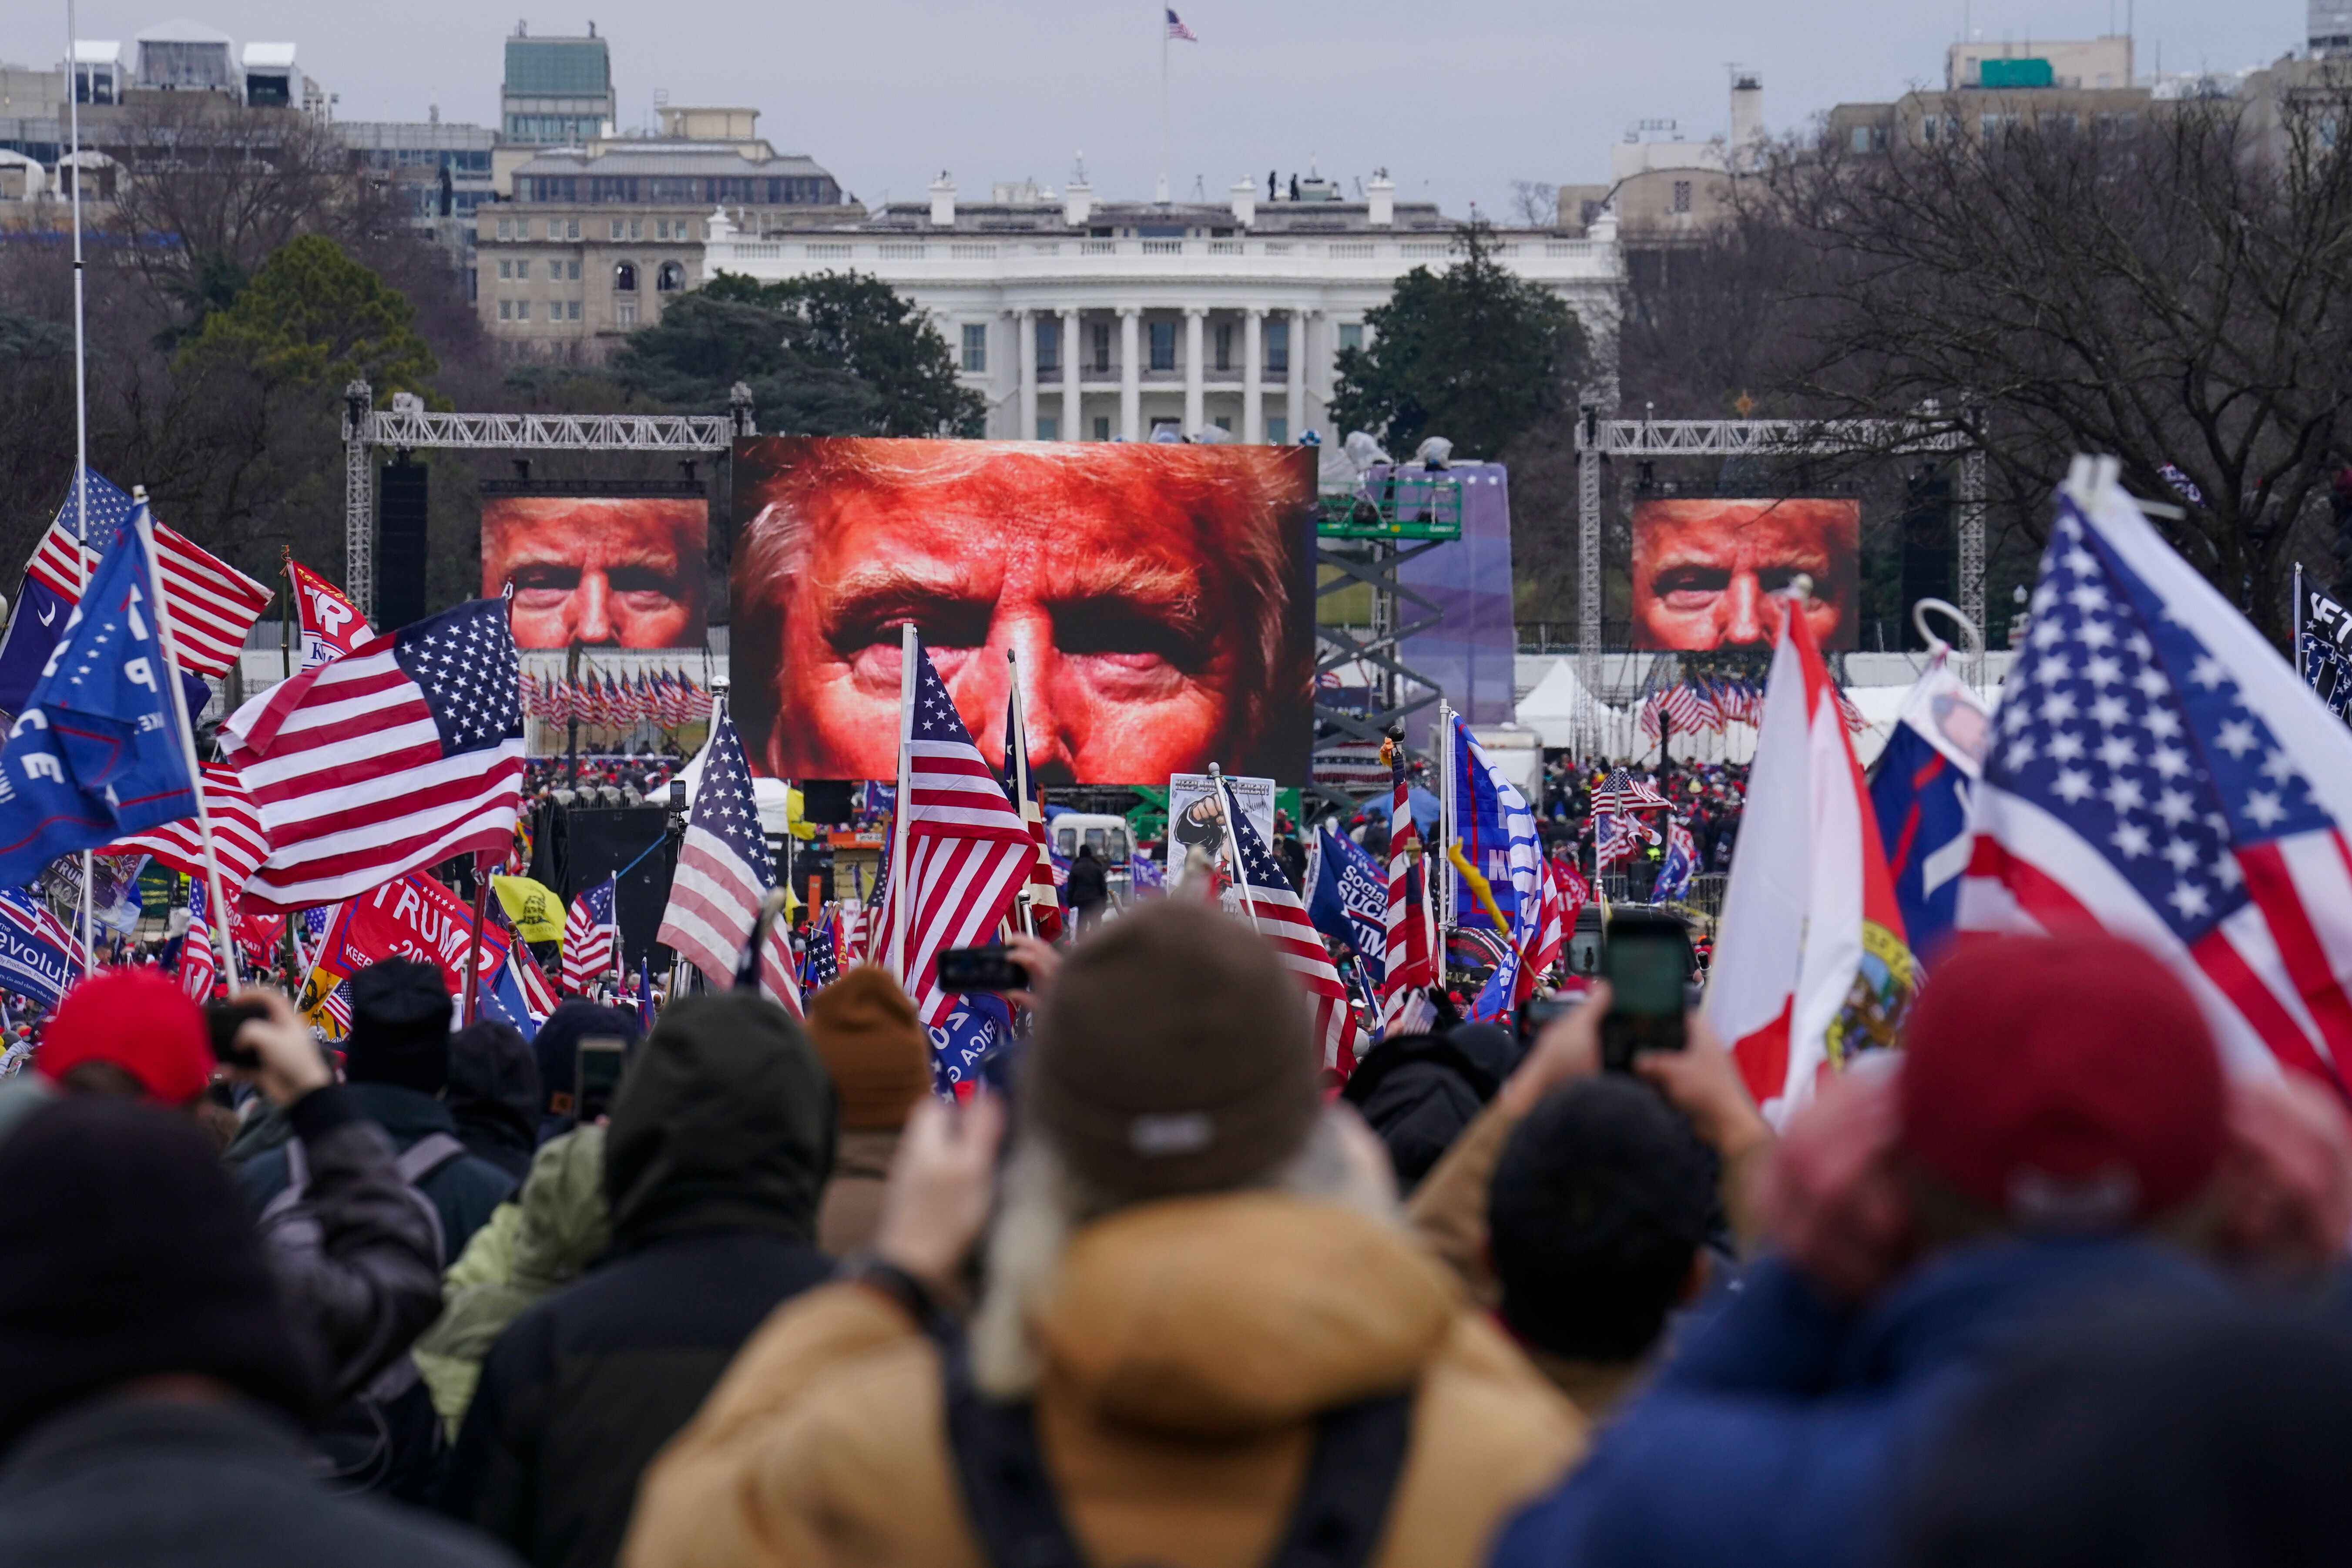 In this Jan. 6, 2021 file photo, Trump supporters participate in a rally in Washington. An AP review of records finds that me